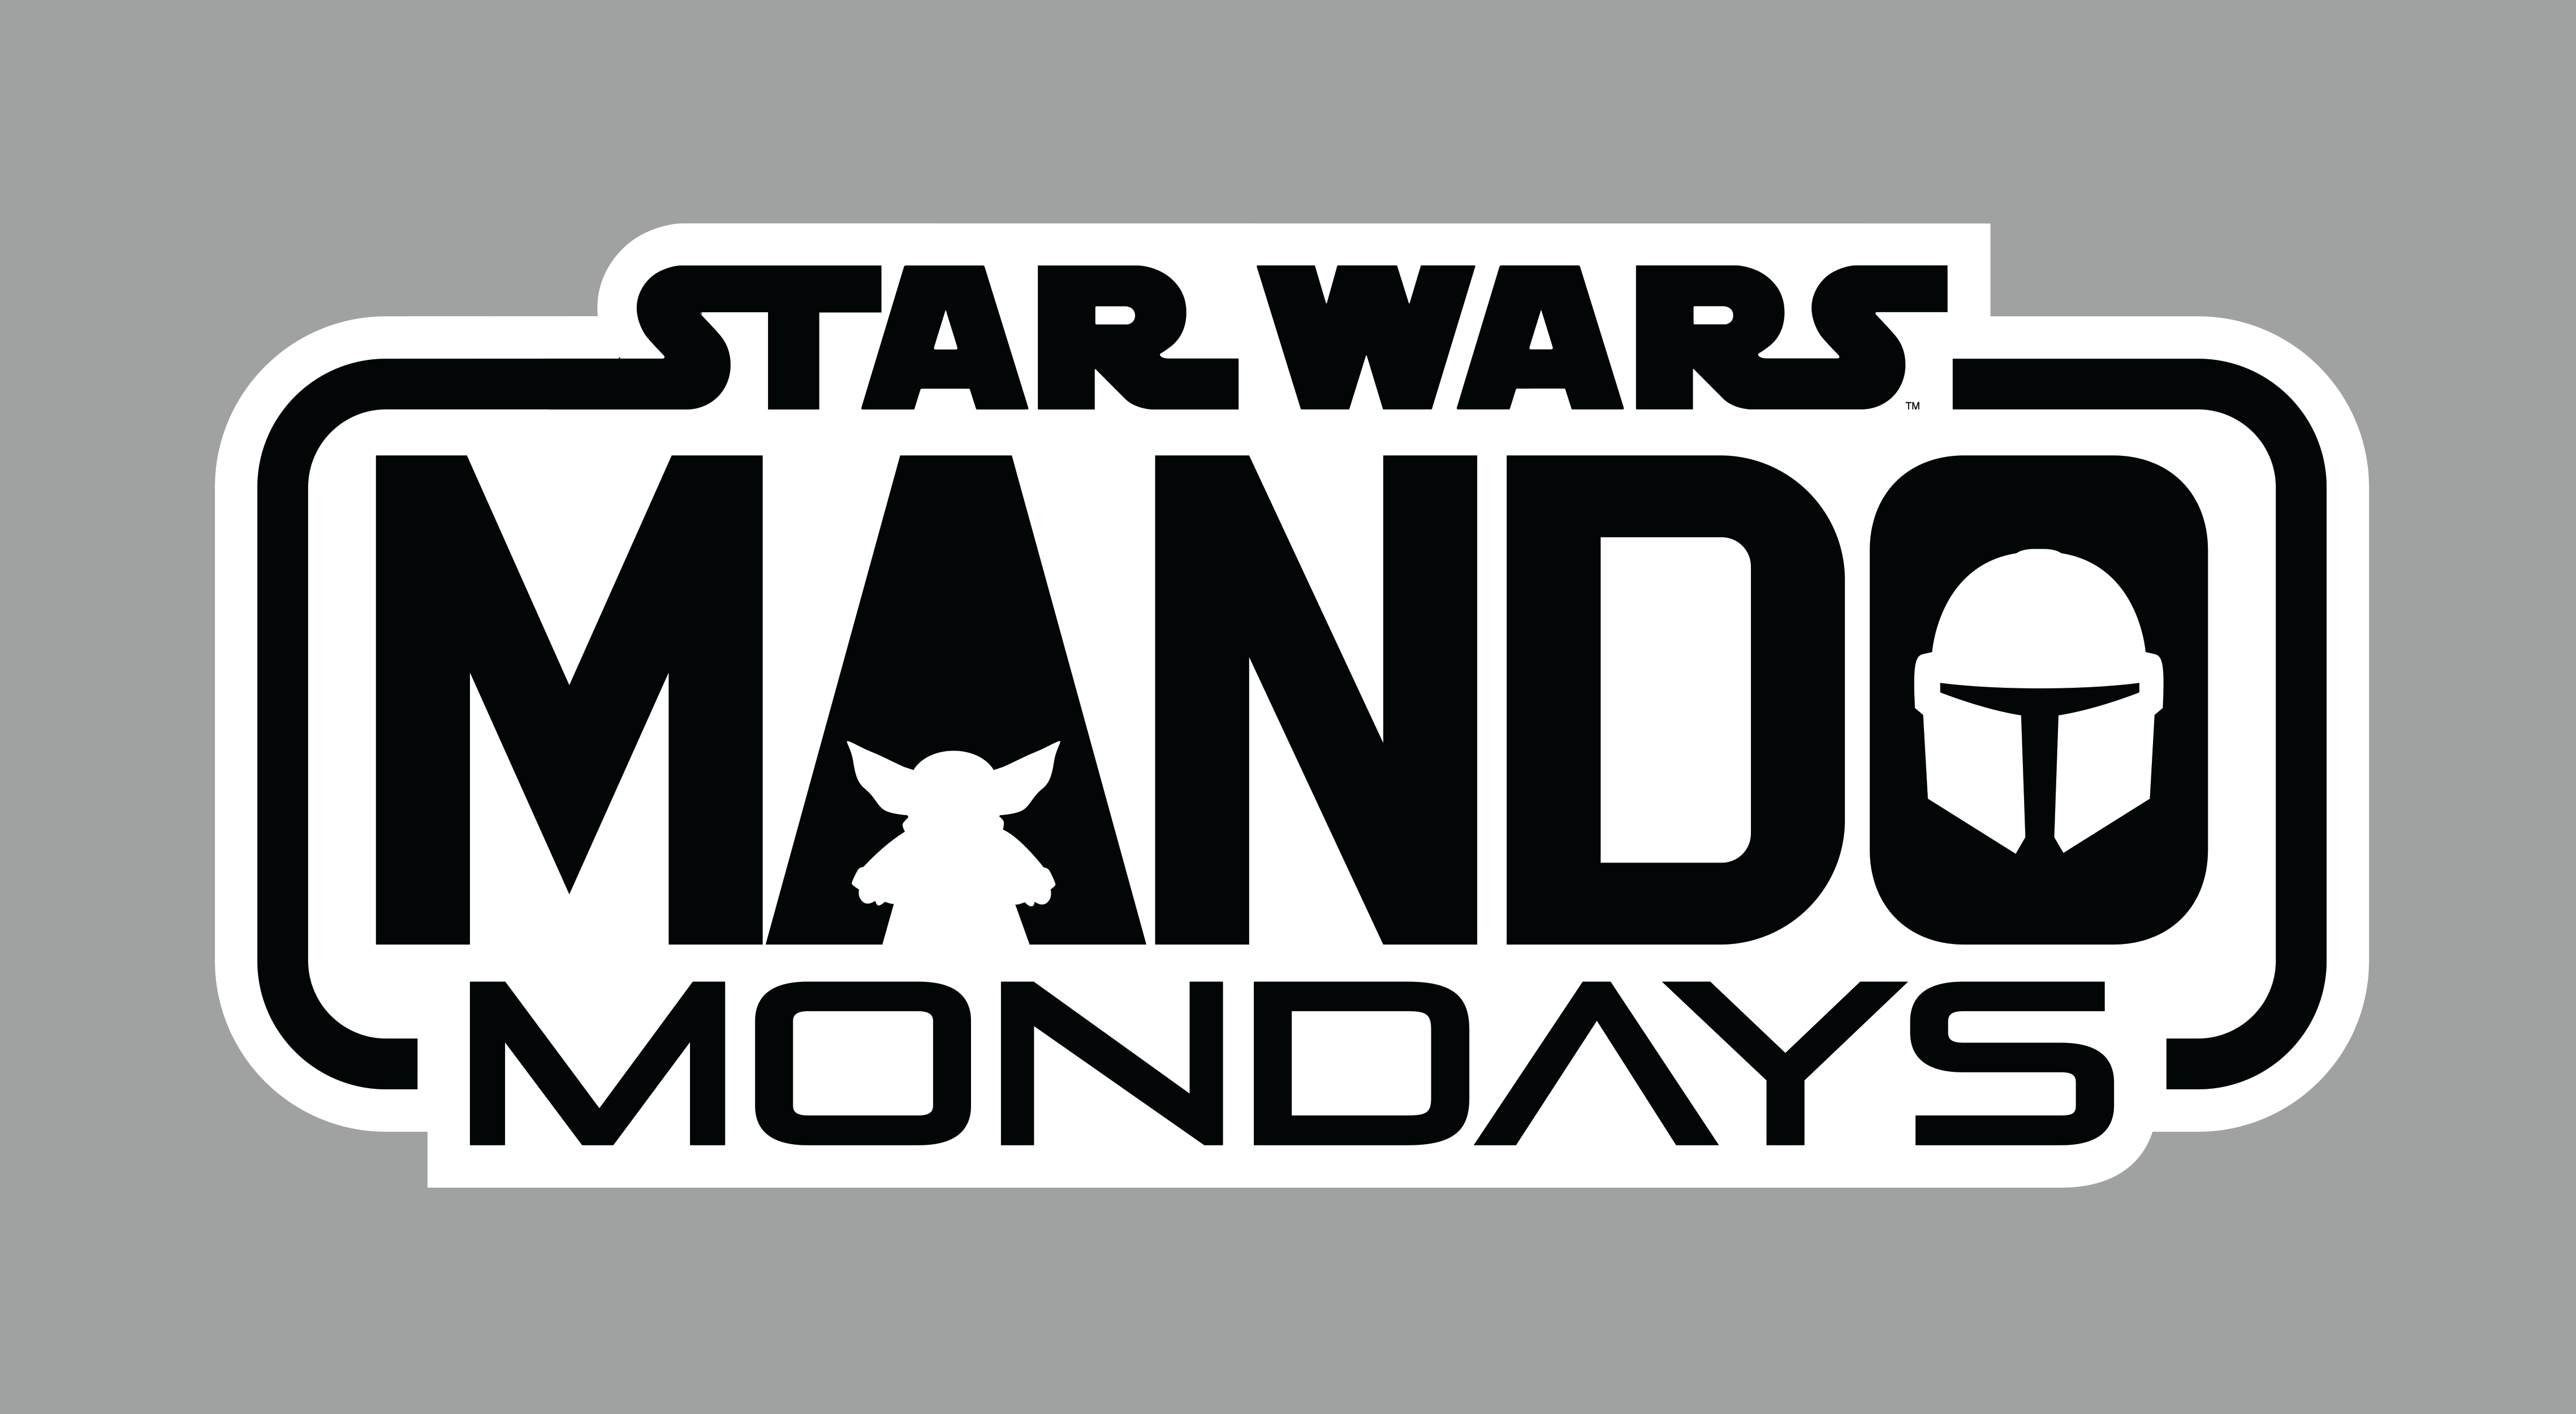 mandalorian Monday Star Wars